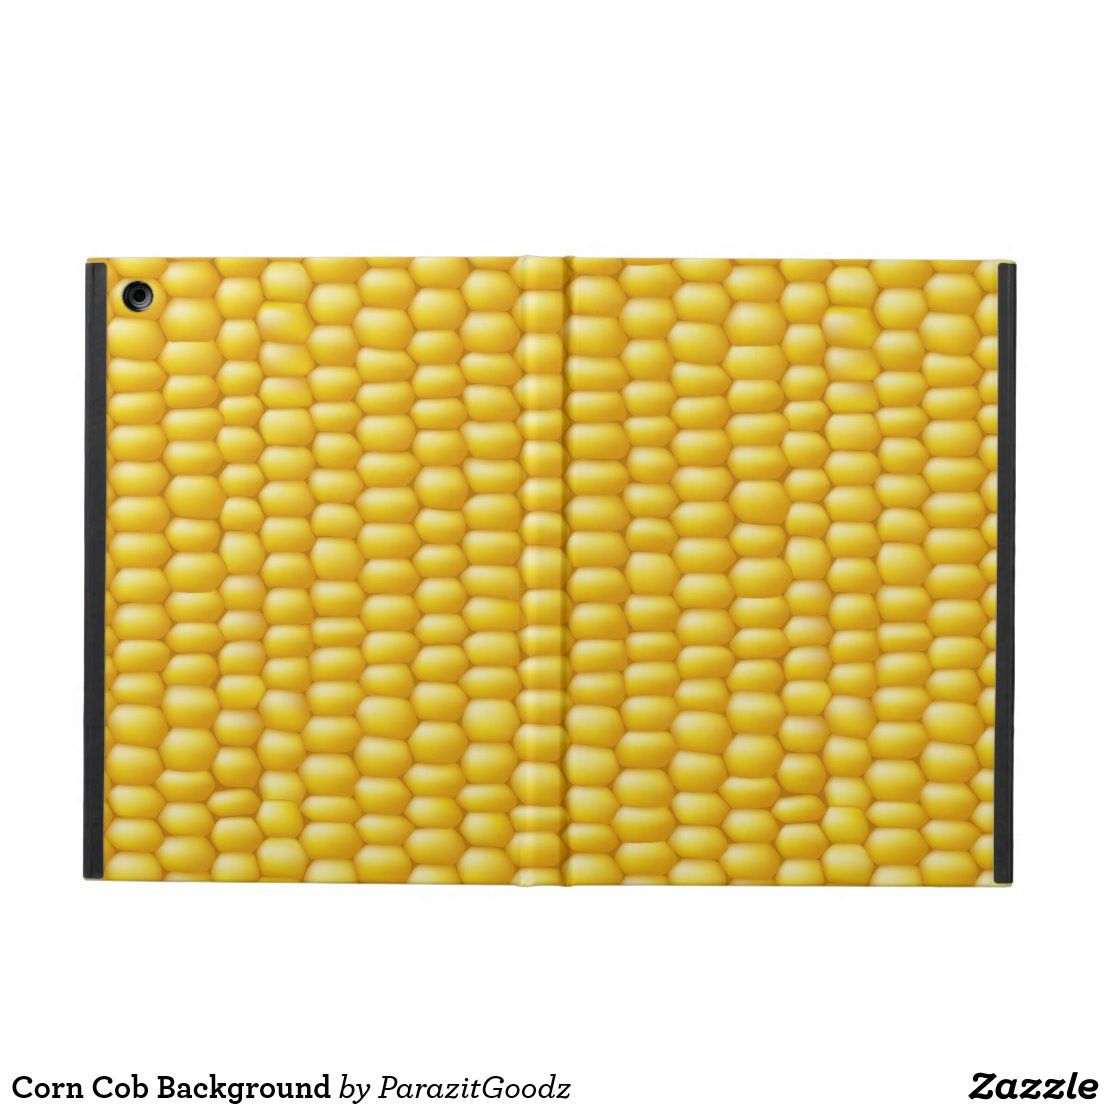 This new design with corncob textures is for those who like to eat corn and looking for a humorous gift to their loved ones! #zazzle #corn #food #foodie #humor #agriculture #farm #farmer  #artprint #gifts #gift #giftideas #design #unique #custom #tech #technology #accessories #laptop #ipad #phone #phonecase #iphone #samsung #keyboard #mouse #decal #sleeve #case #phoneaccessories